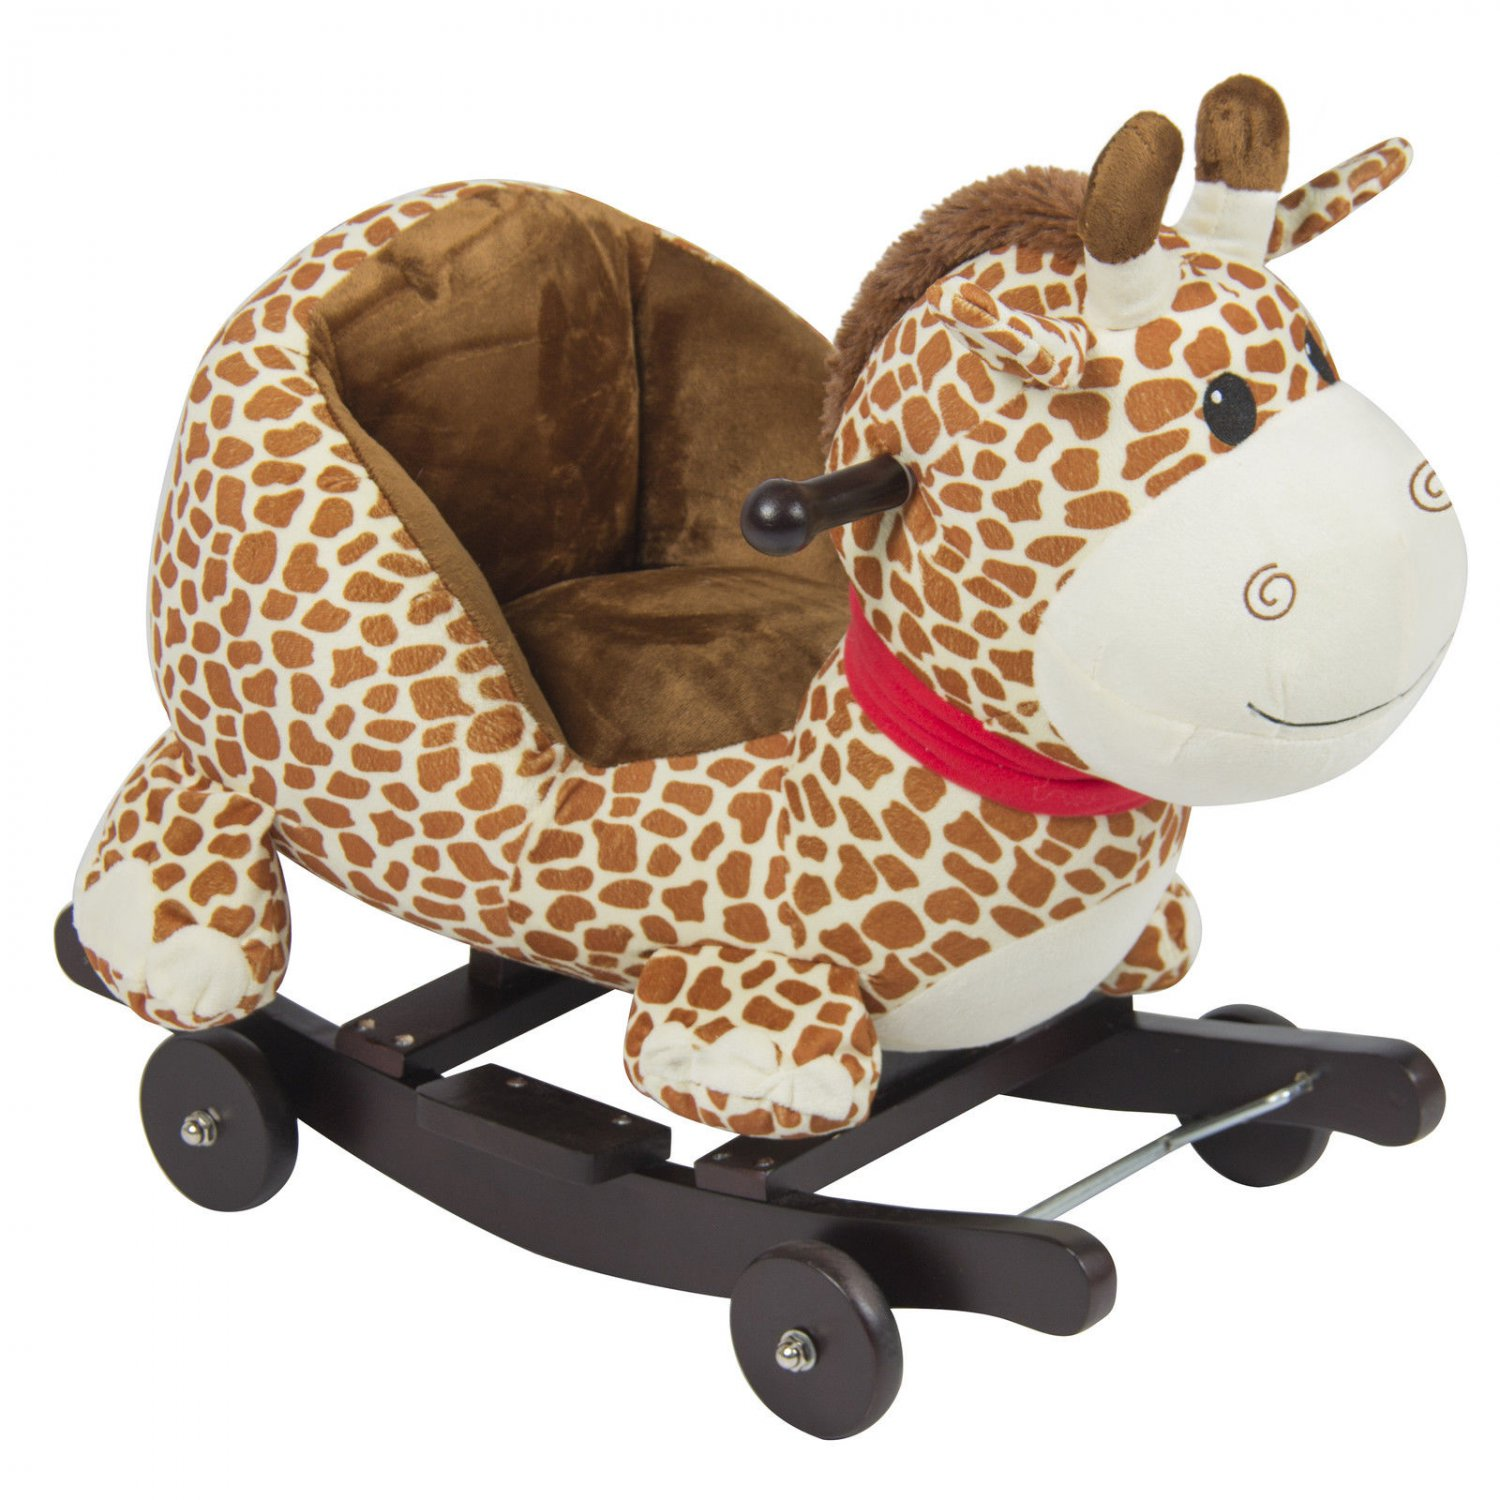 Kids Giraffe Animal Rocker W Wheels Children Ride Toy Plush